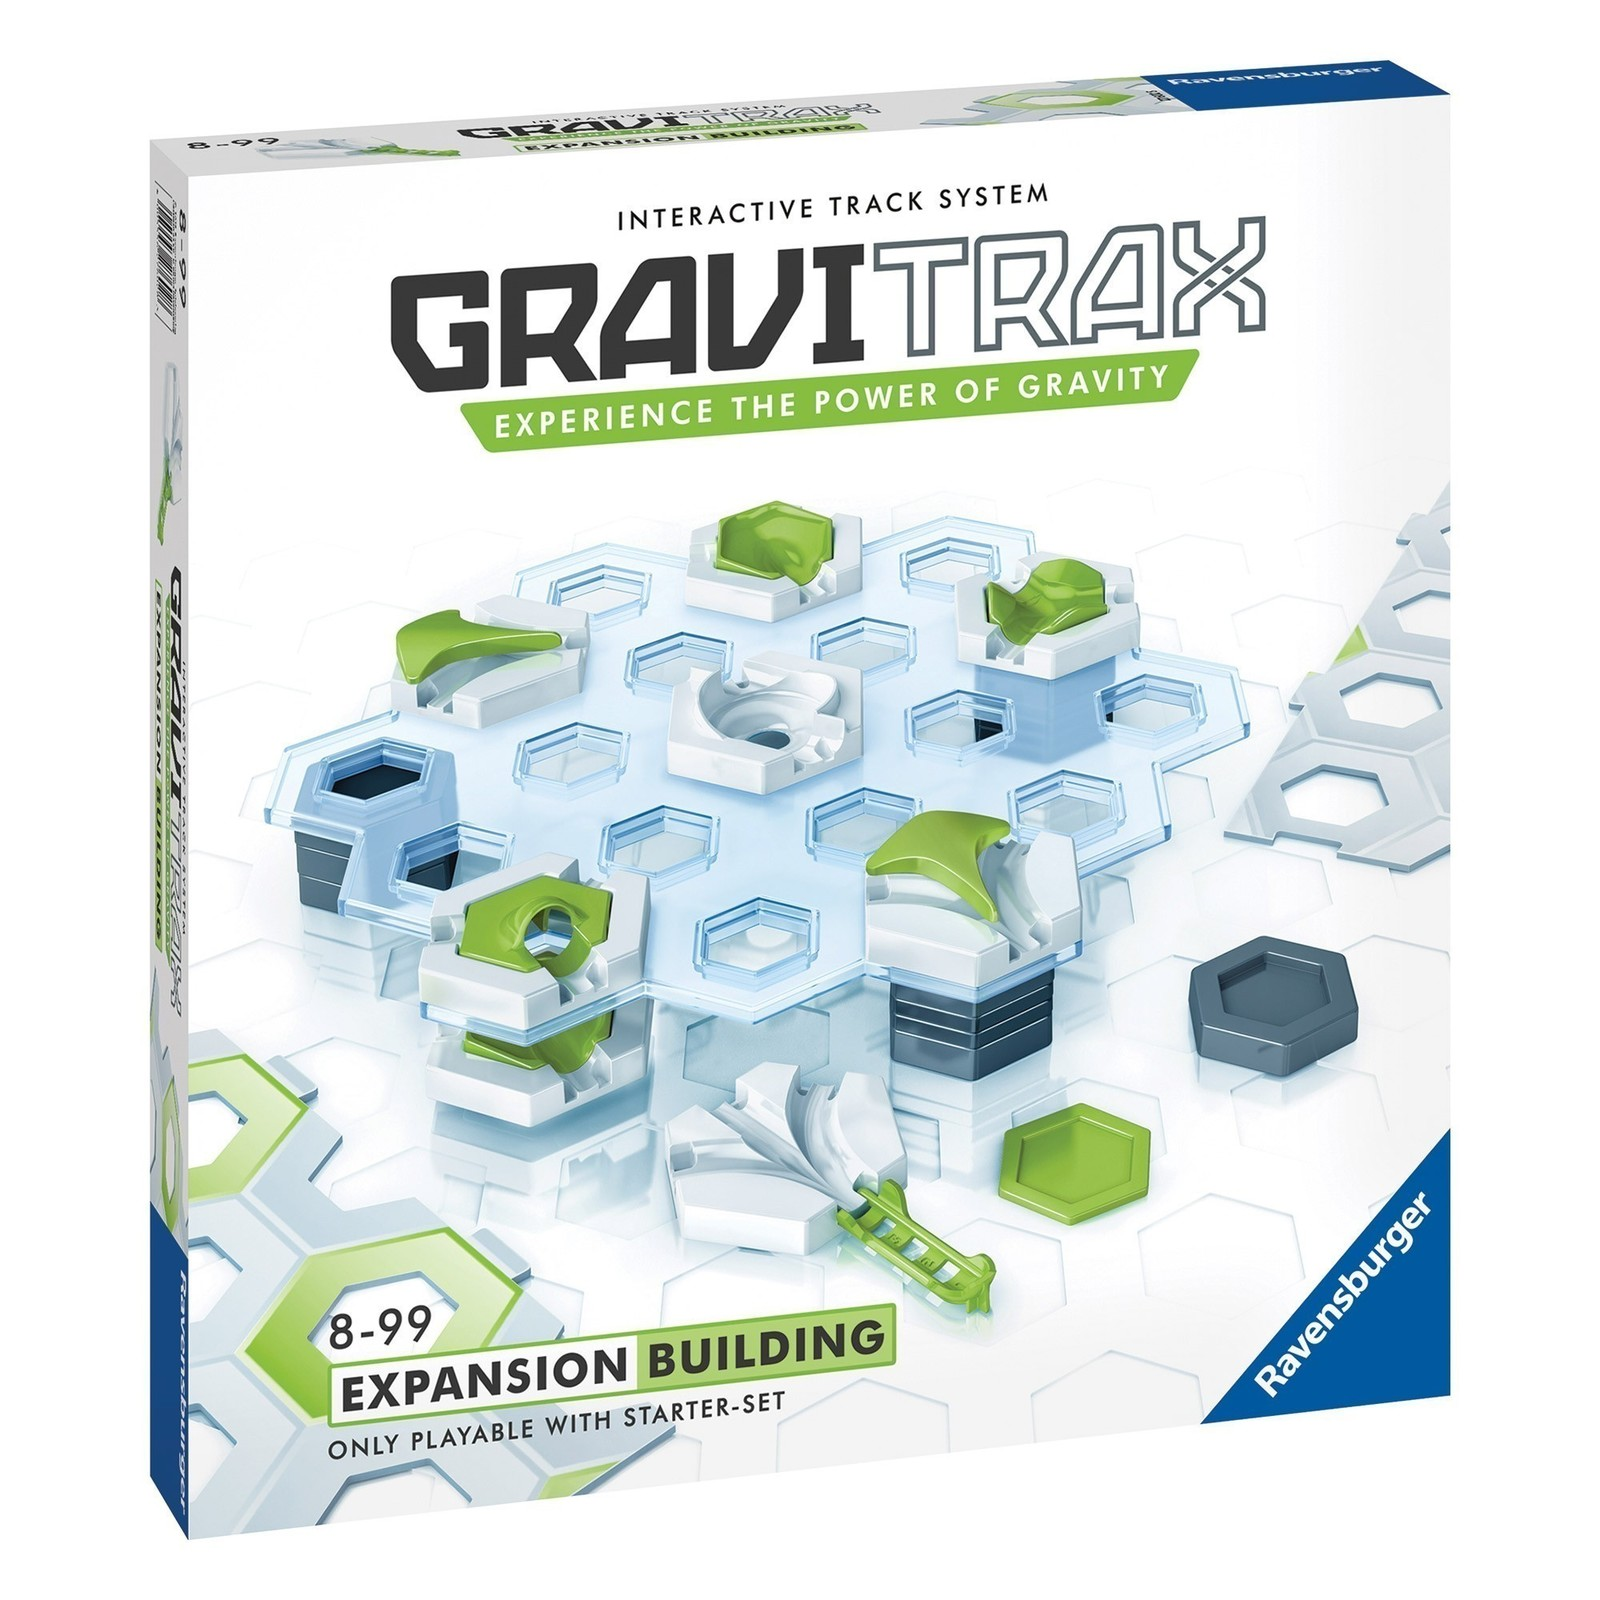 GraviTrax Building Expansion image